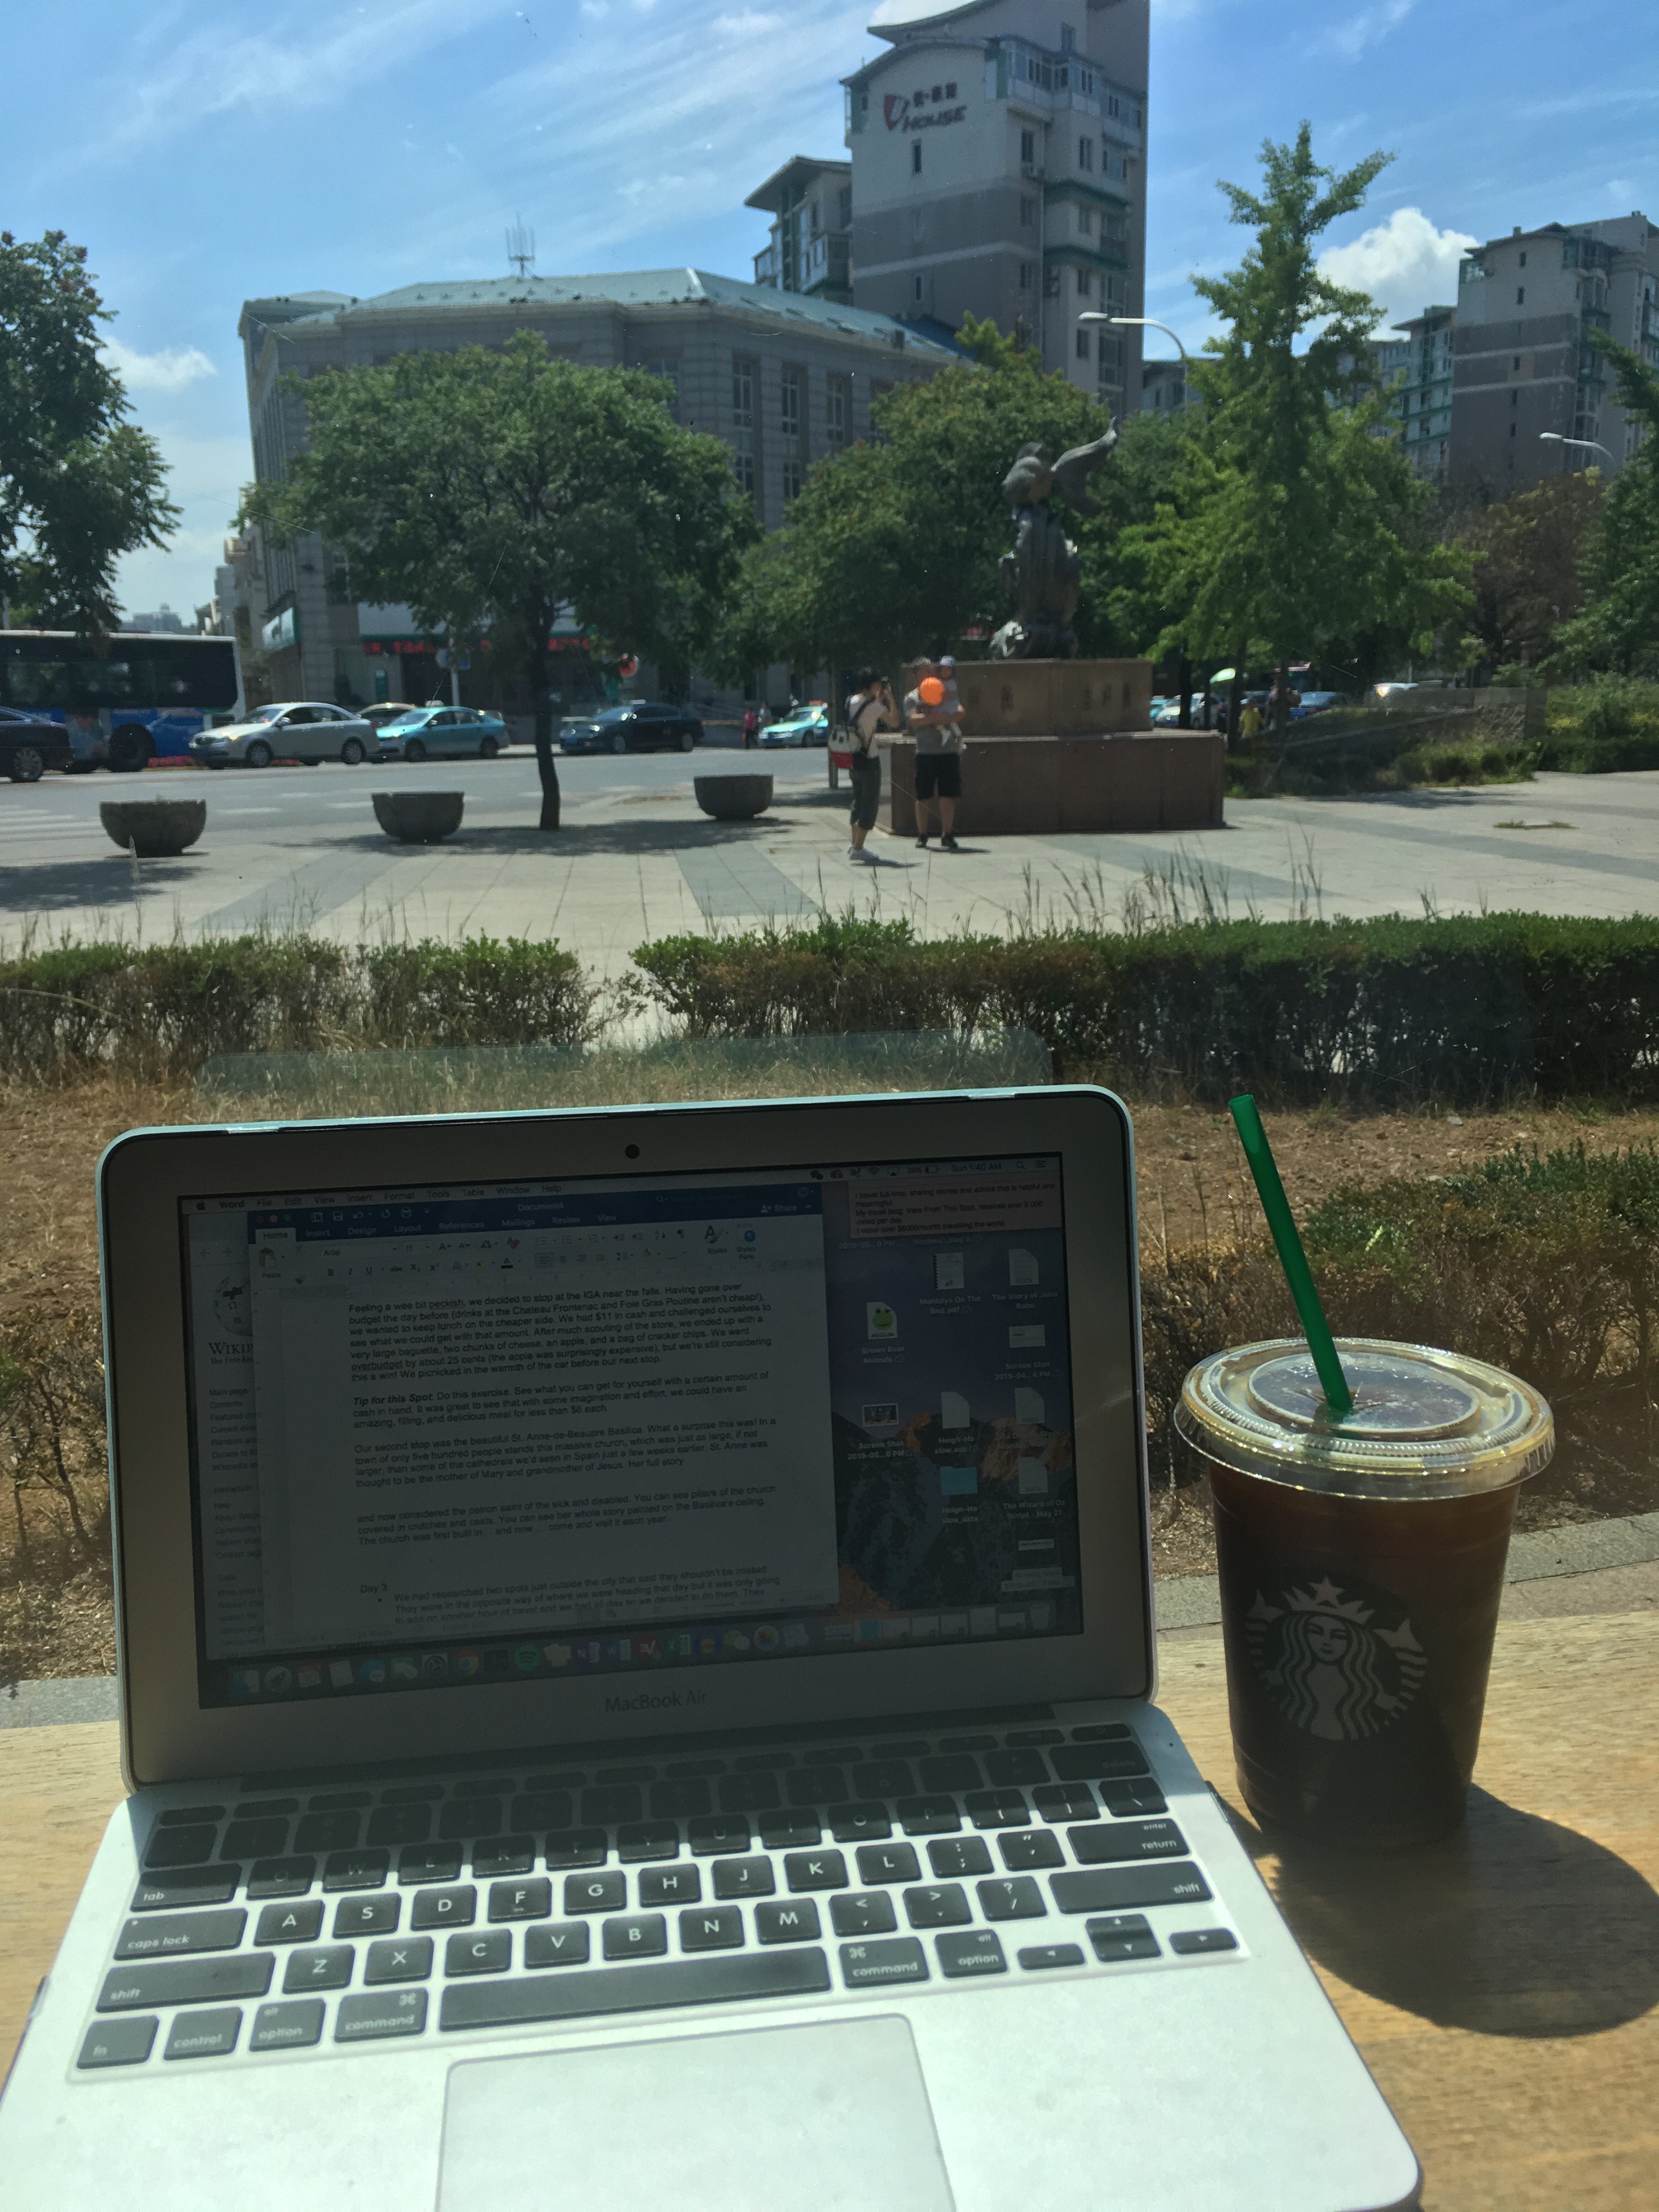 Laptop and iced coffee by the window. View of a little square outside in the background. Dalian, China.